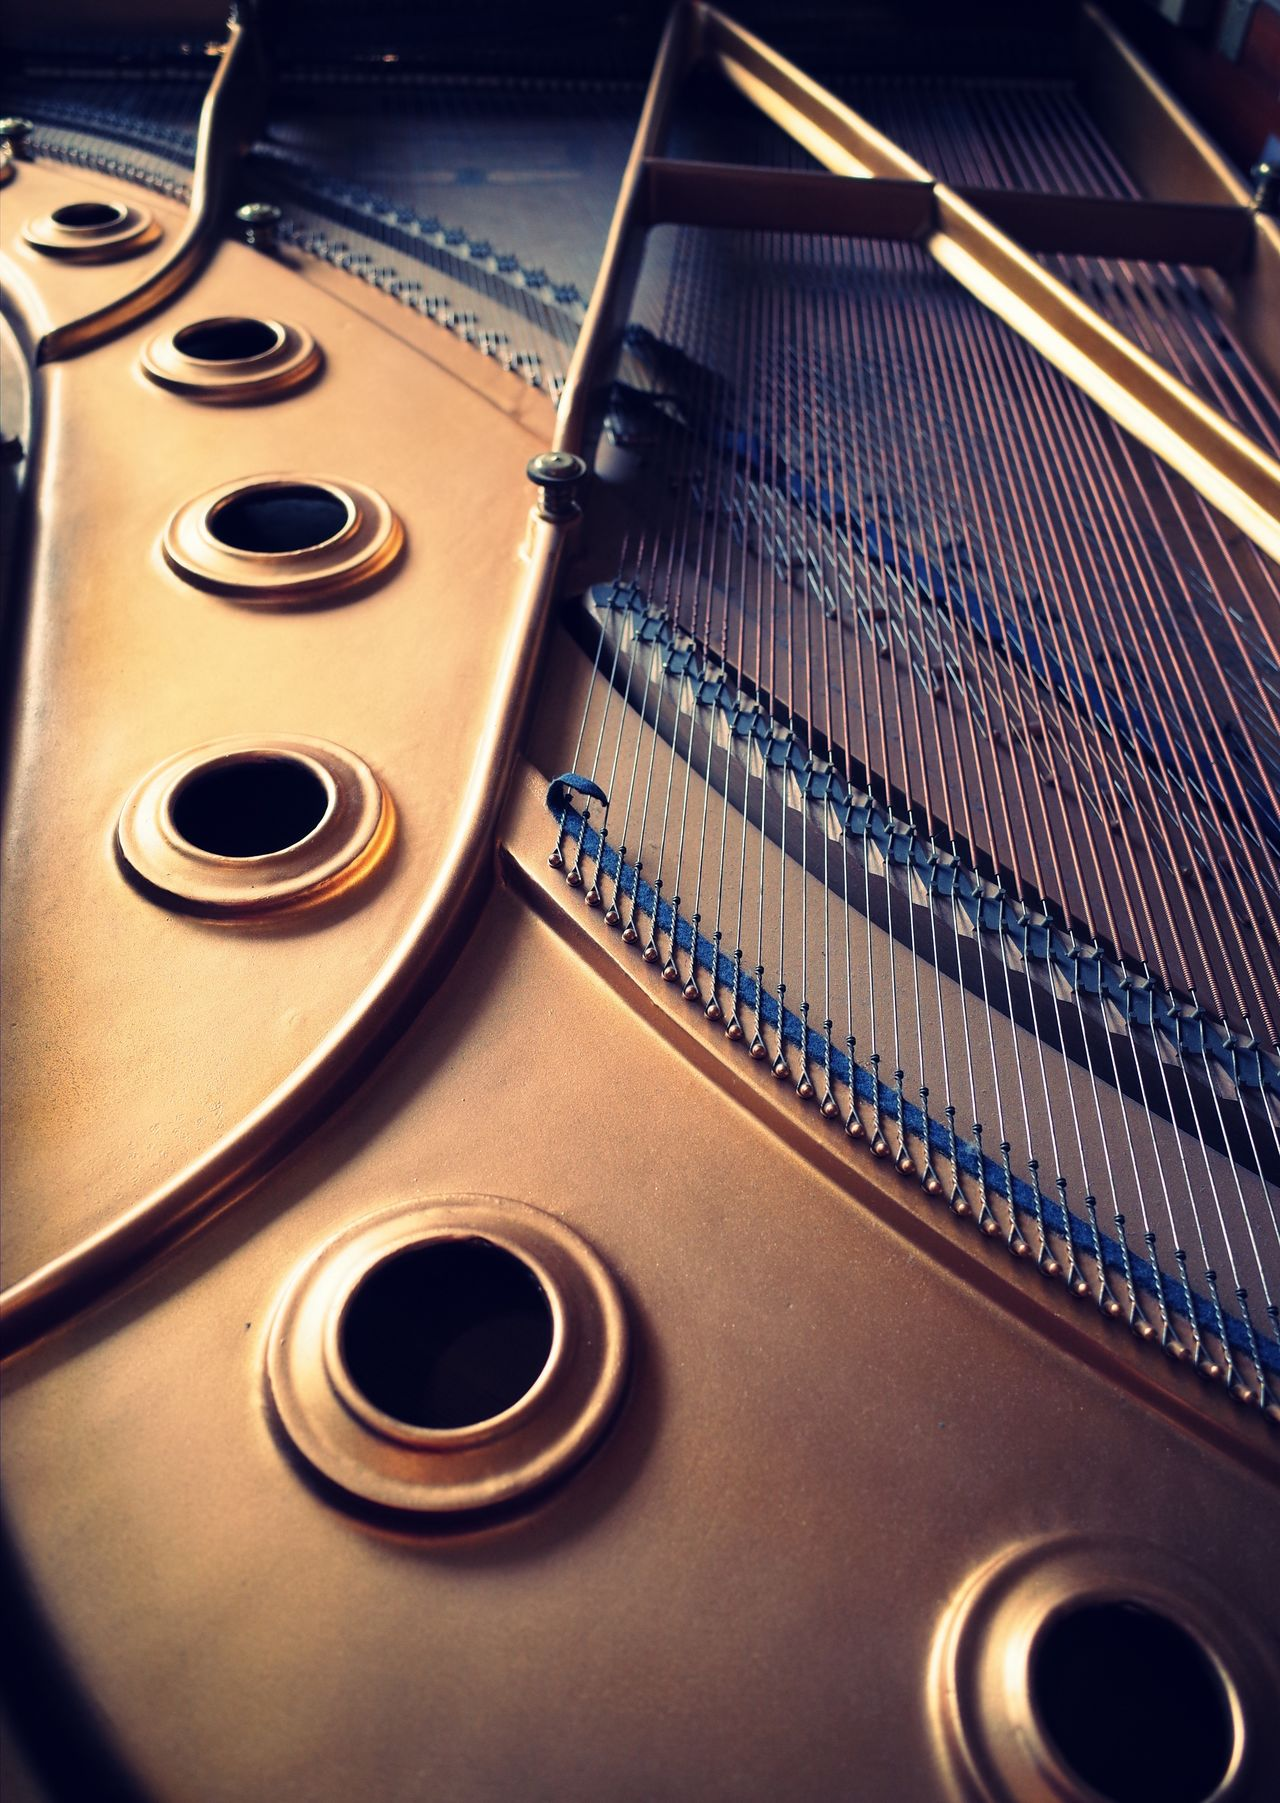 Gold Piano Grand Piano Music Musical Equipment Musical Instrument Musical Instrument String Piano Strings Strings Of Music Take Over Music TakeoverMusic The Week Of Eyeem